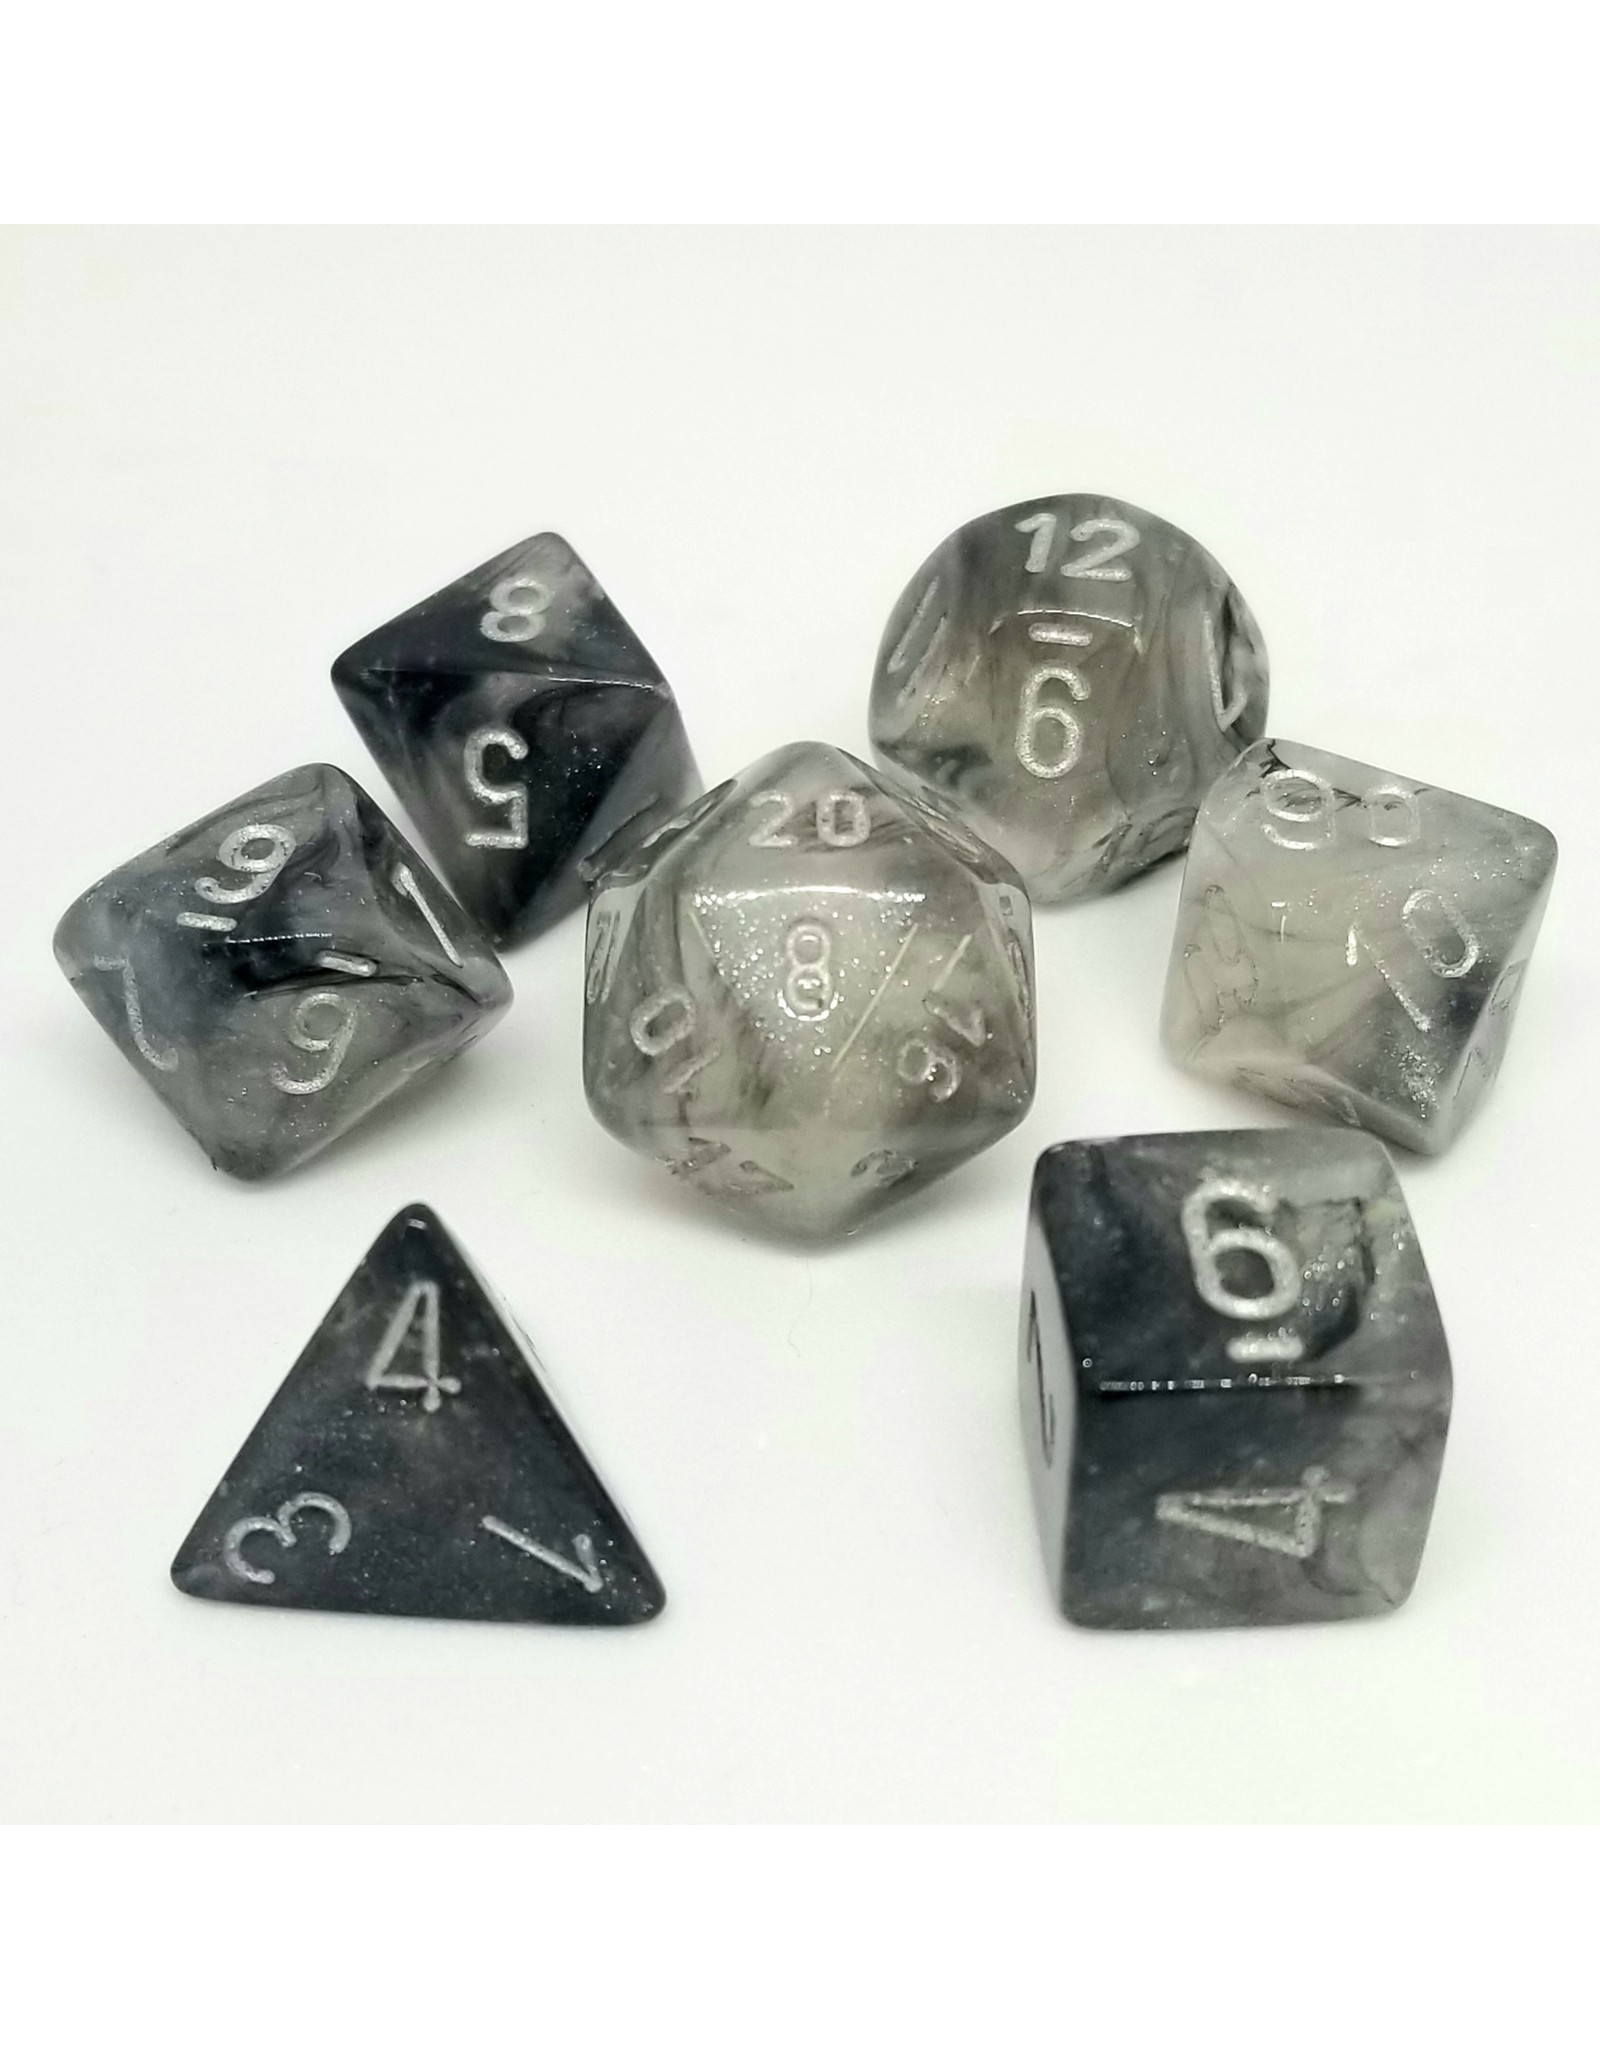 CHESSEX CHX 27578 7ct BOREALIS POLYHEDRAL SMOKE/SILvER LUMINARY